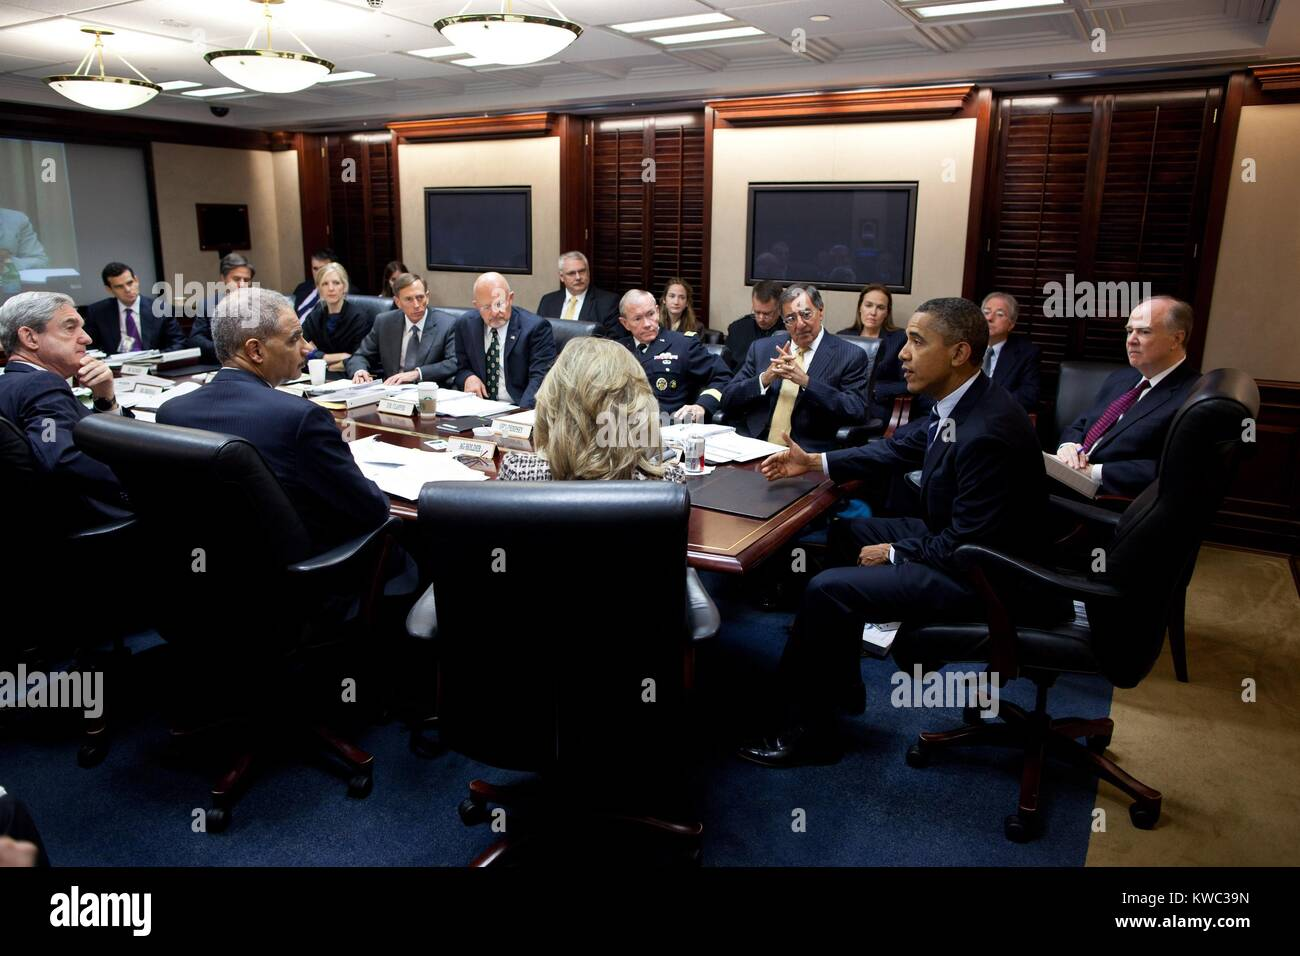 President Barack Obama meets with members of his National Security team in the Situation Room. White House, Oct. - Stock Image